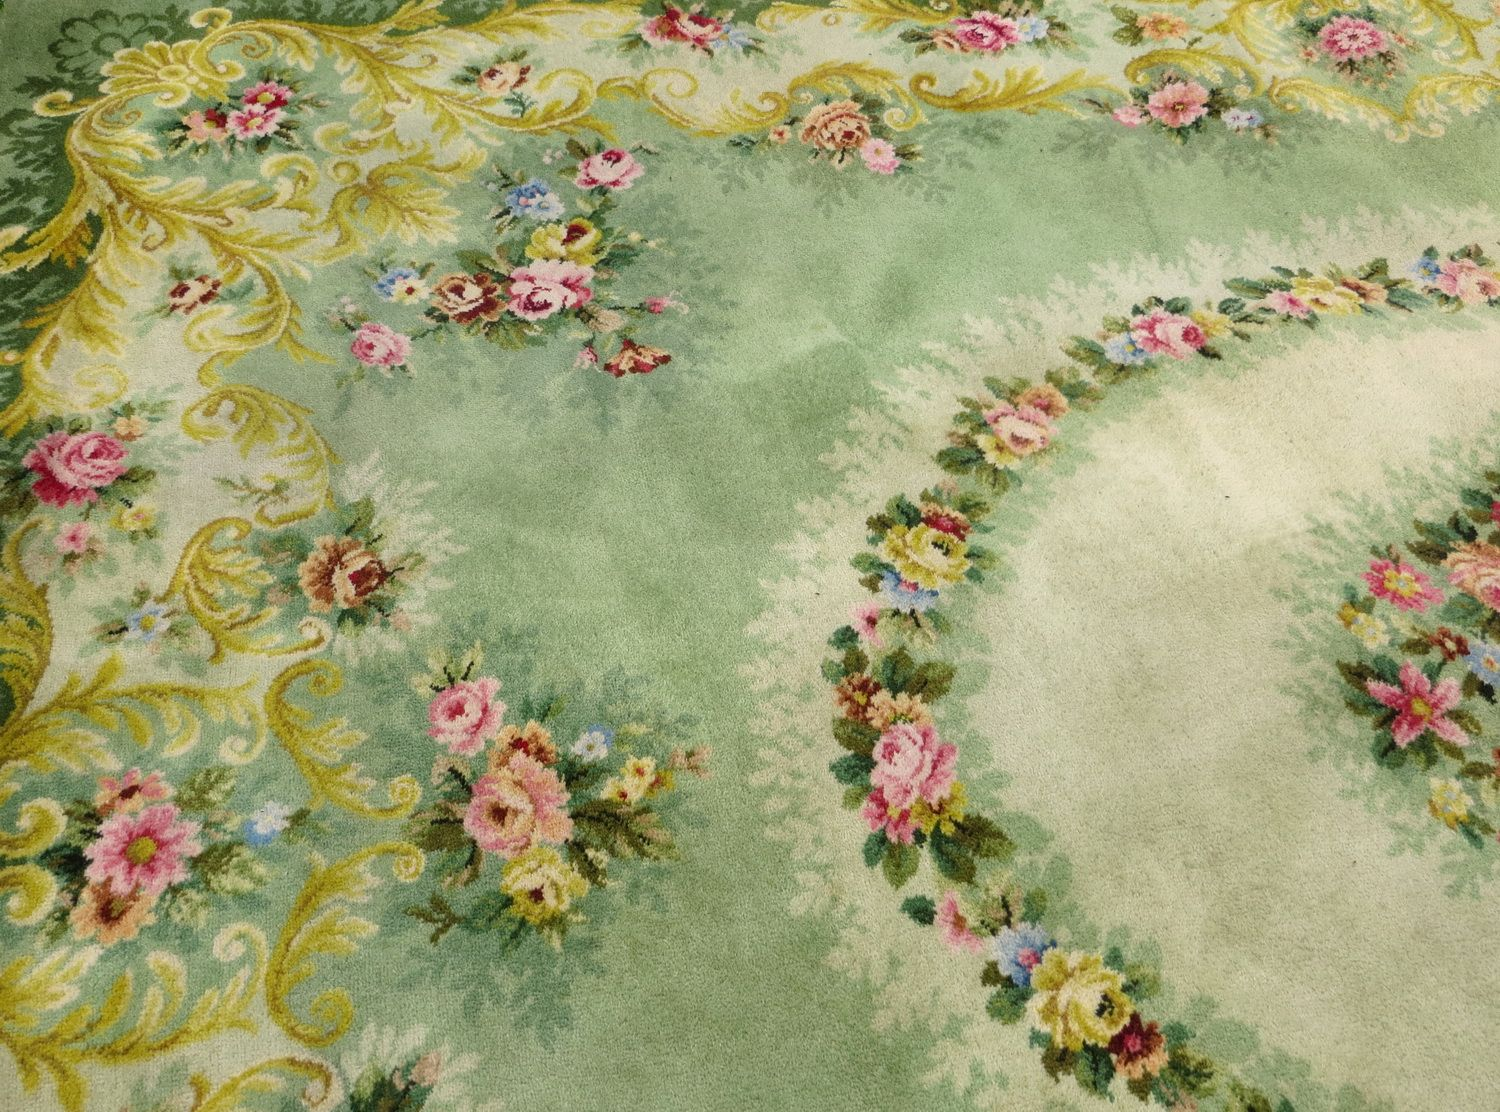 Grand Axminster Wool Floral Carpet Vintage Home Ideas